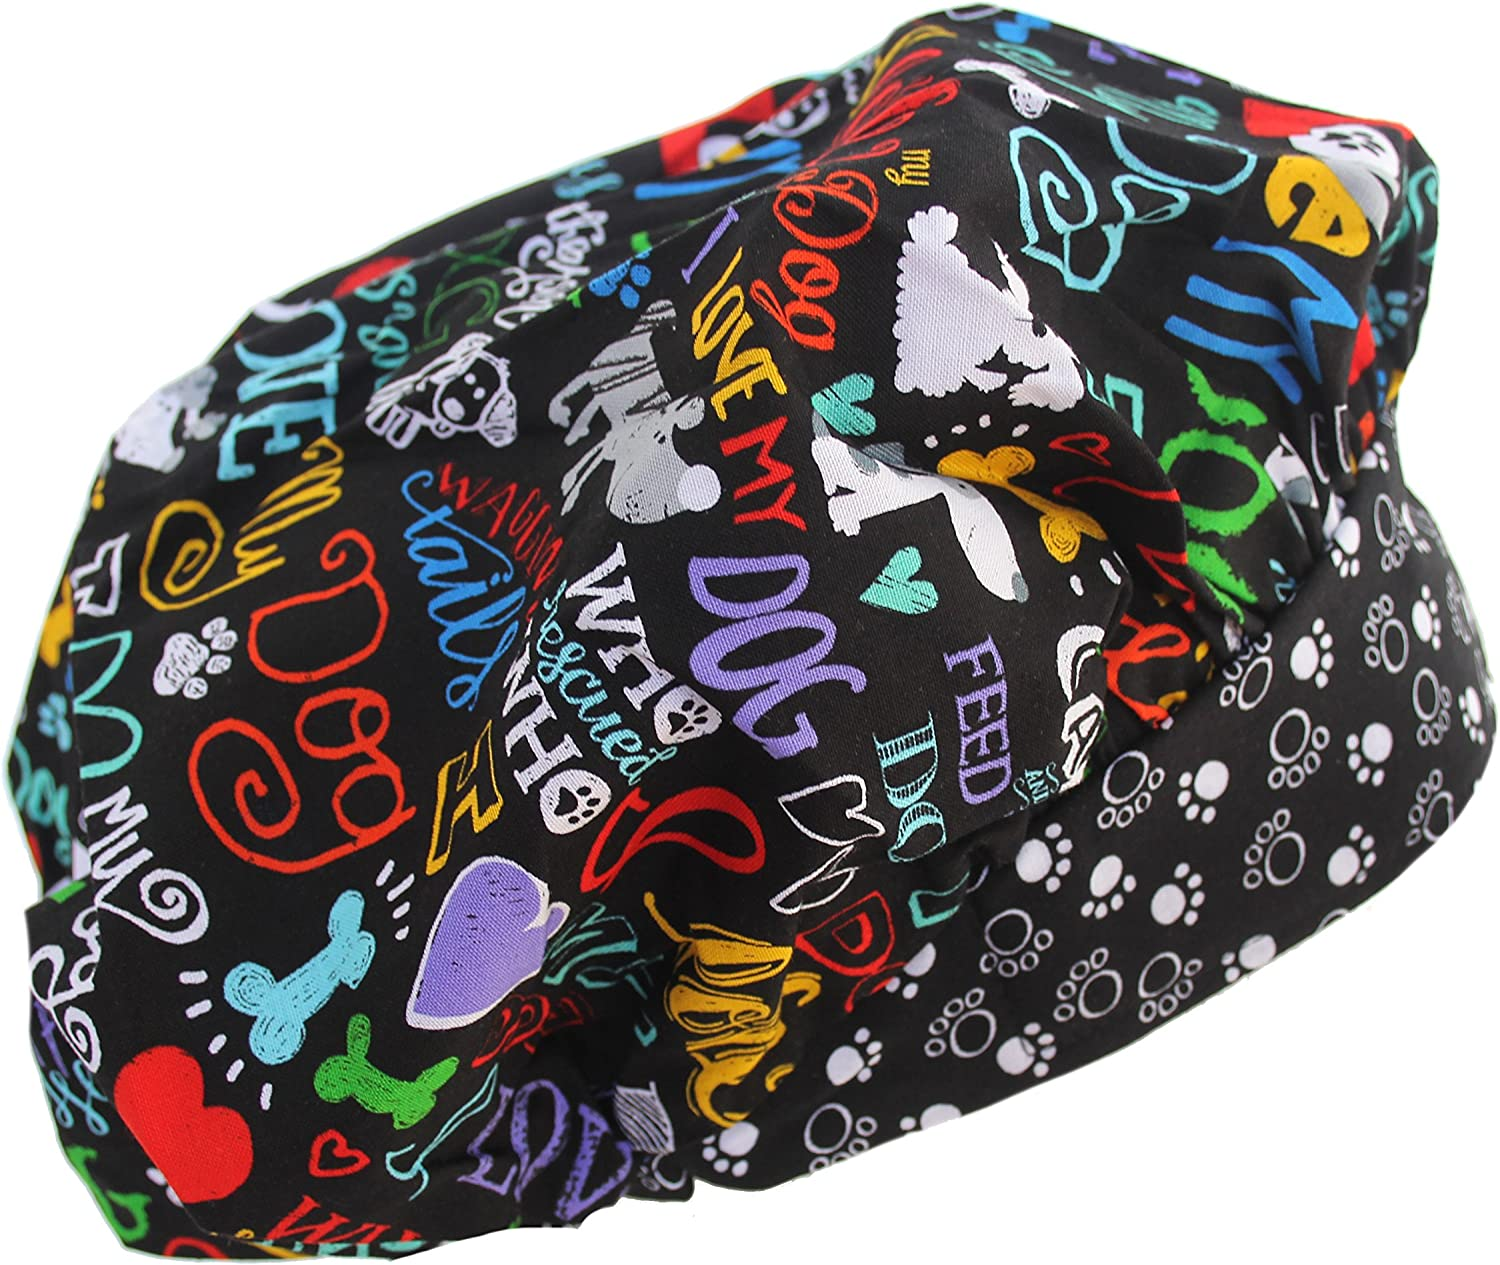 Banded Bouffant I Love My Dog 2 Black Scrub Hat free security shipping on Cap